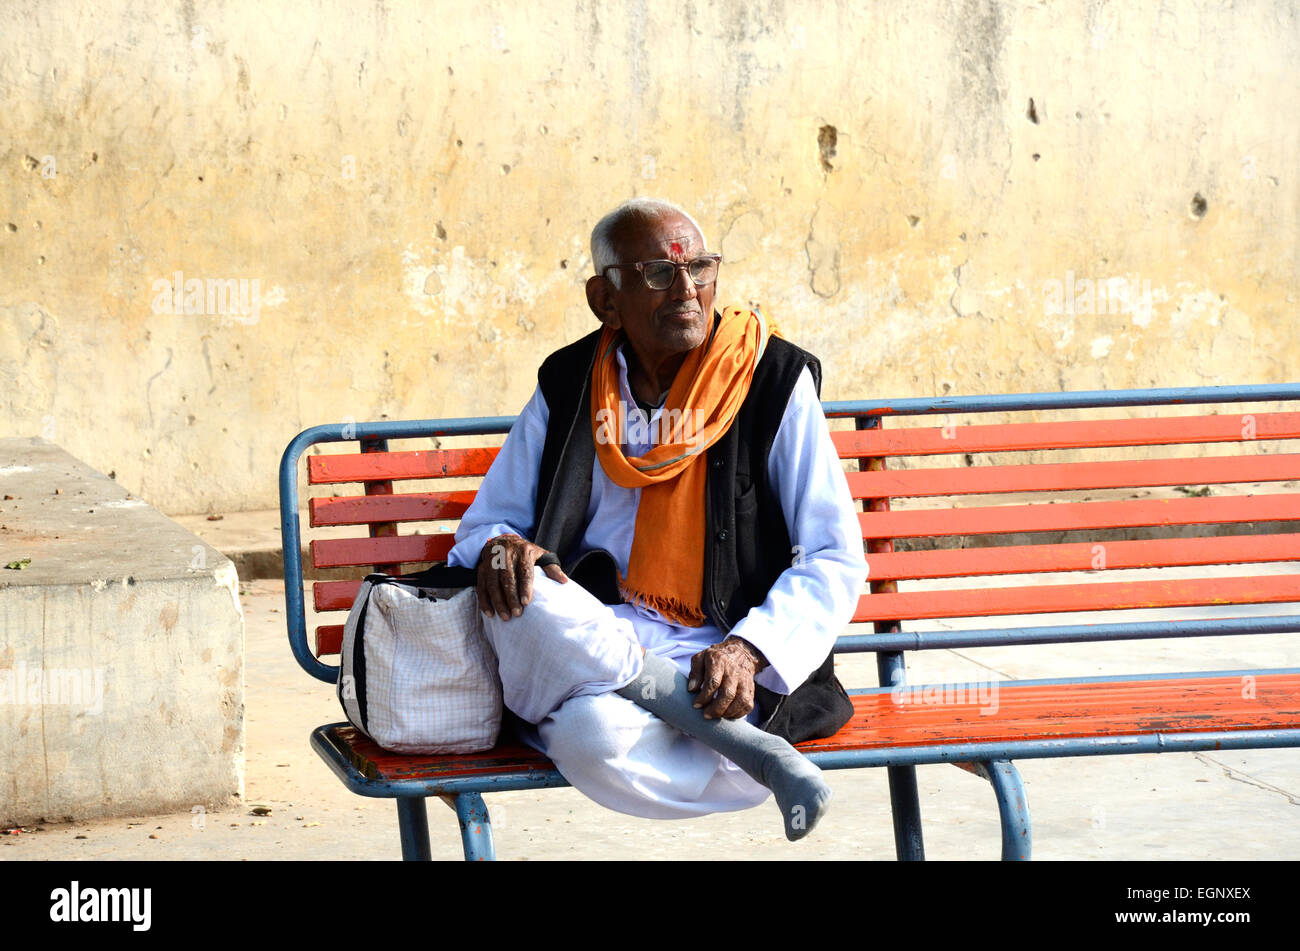 An Indian  wedding mantra chanter sitting on a bench at a railway station Madhya Pradesh India - Stock Image